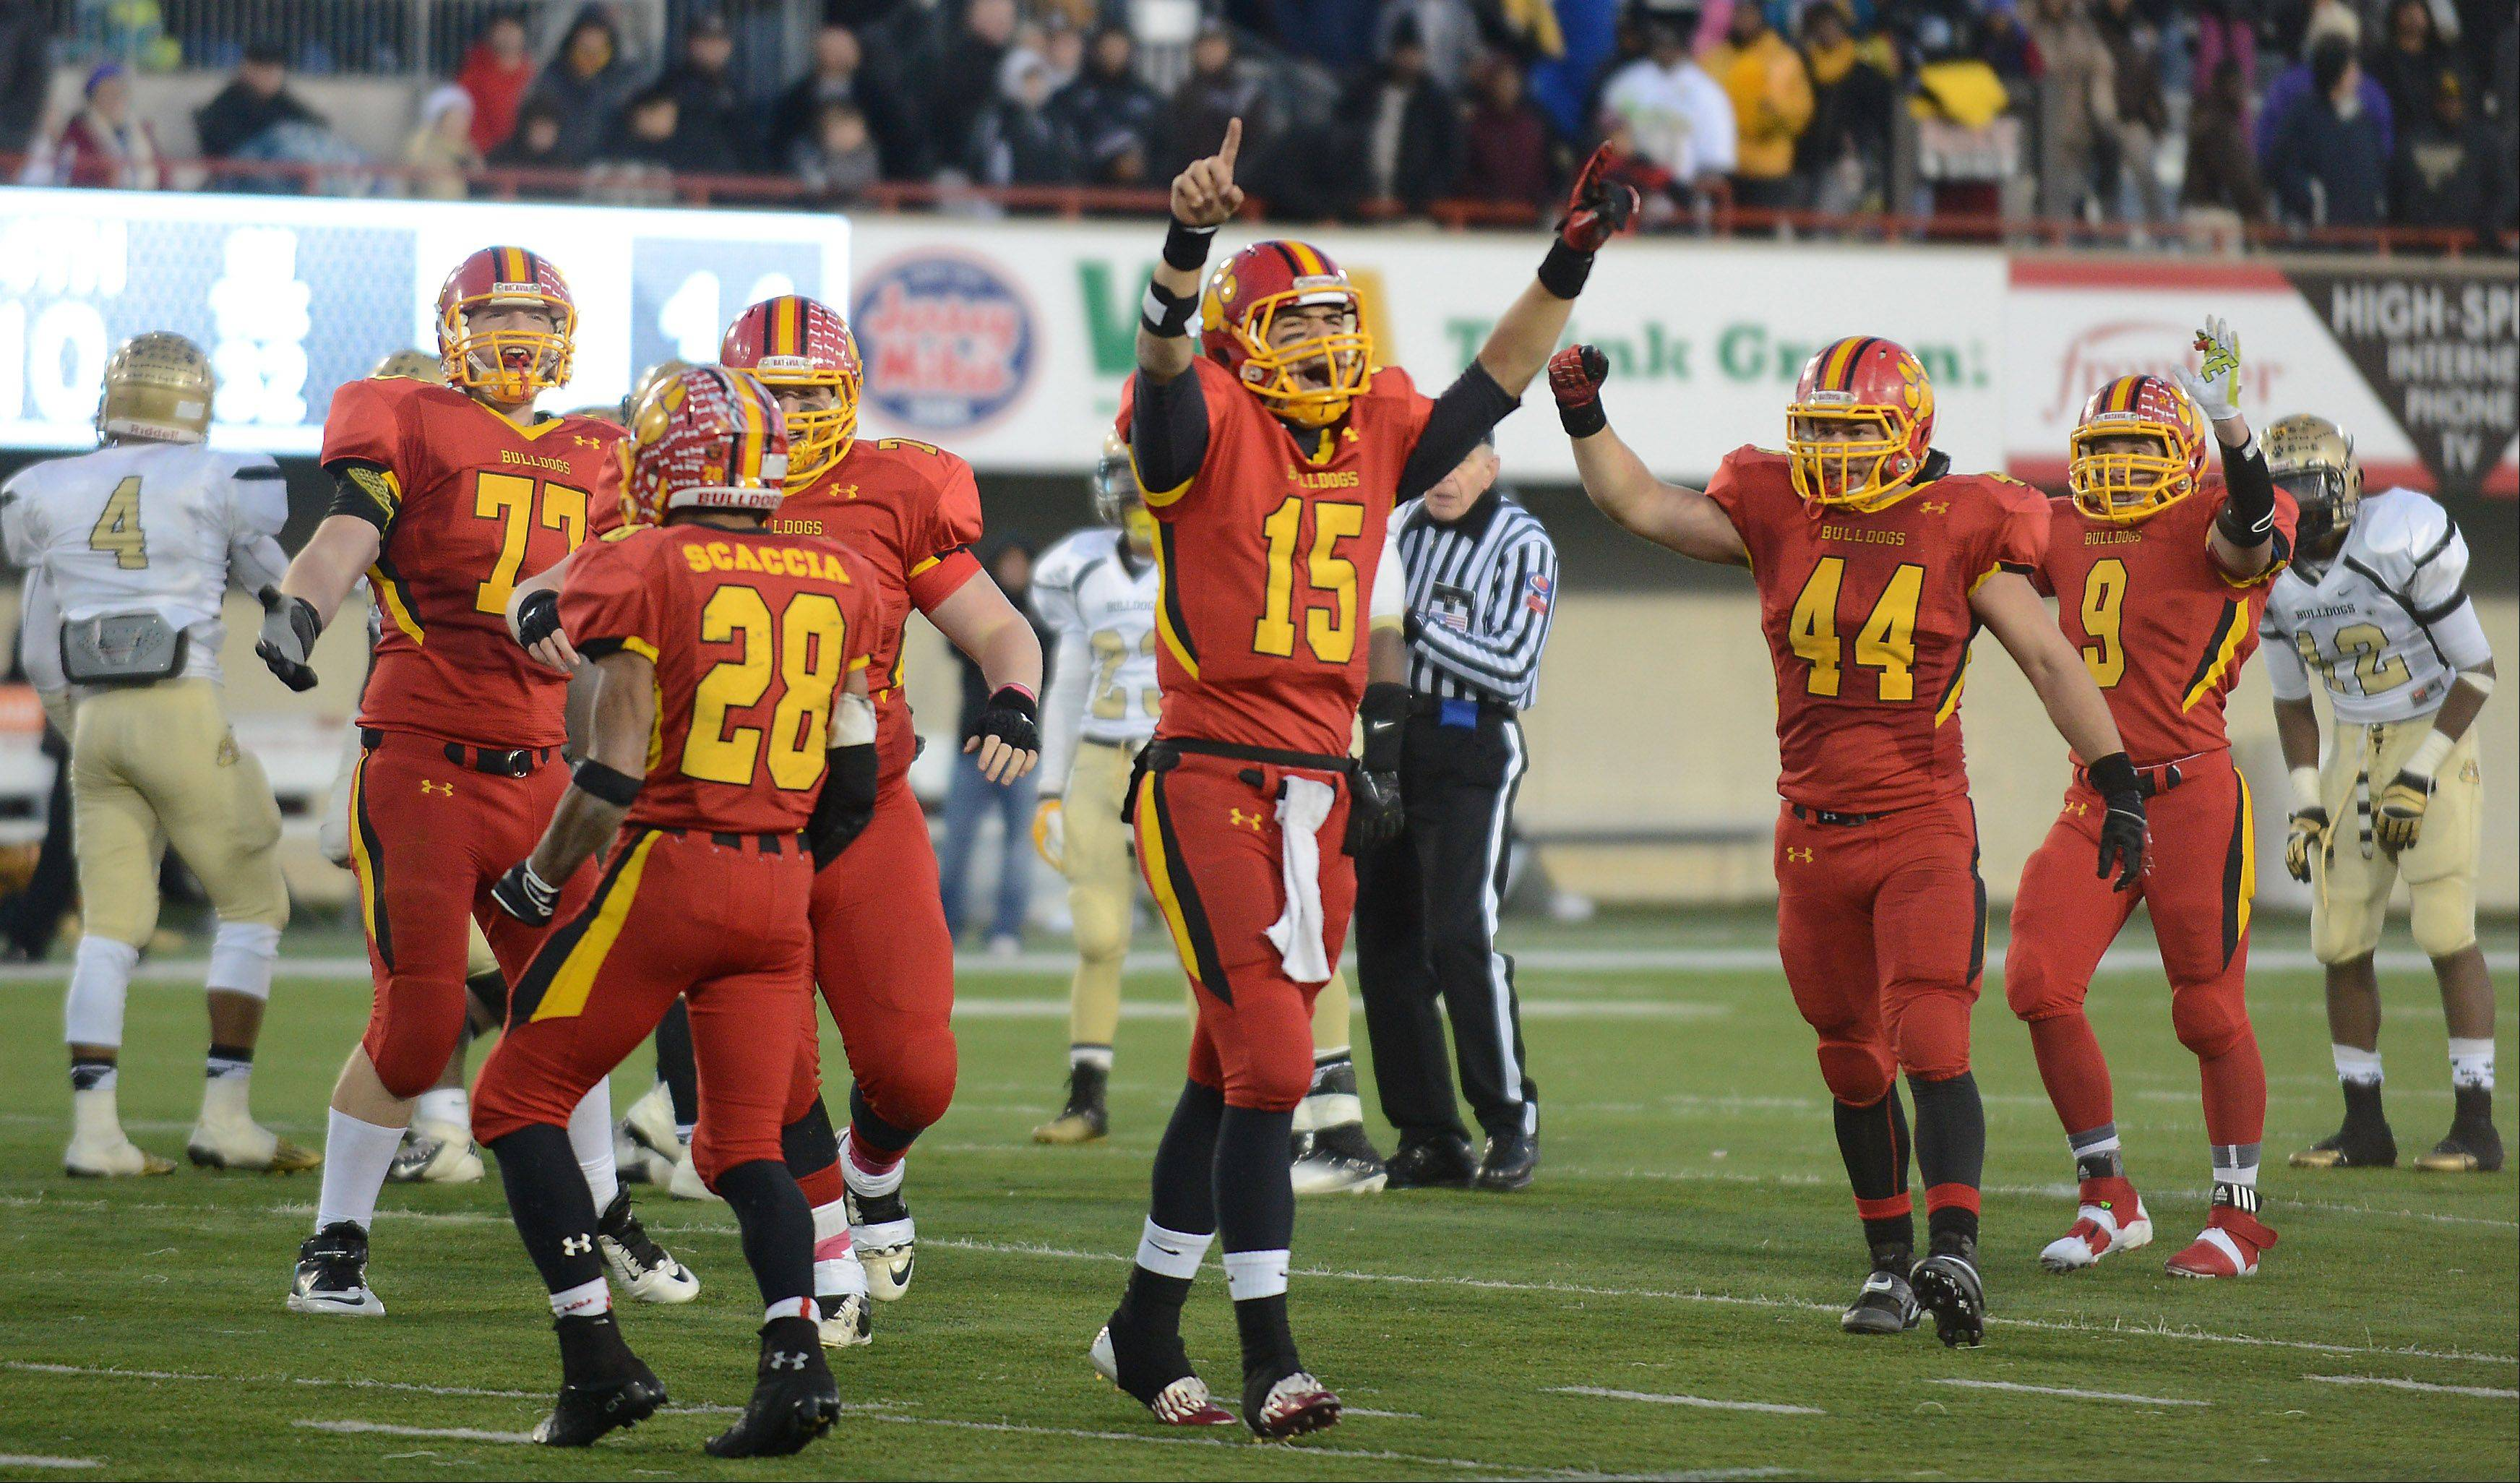 Images: Batavia vs. Richards Class 6A state football championship